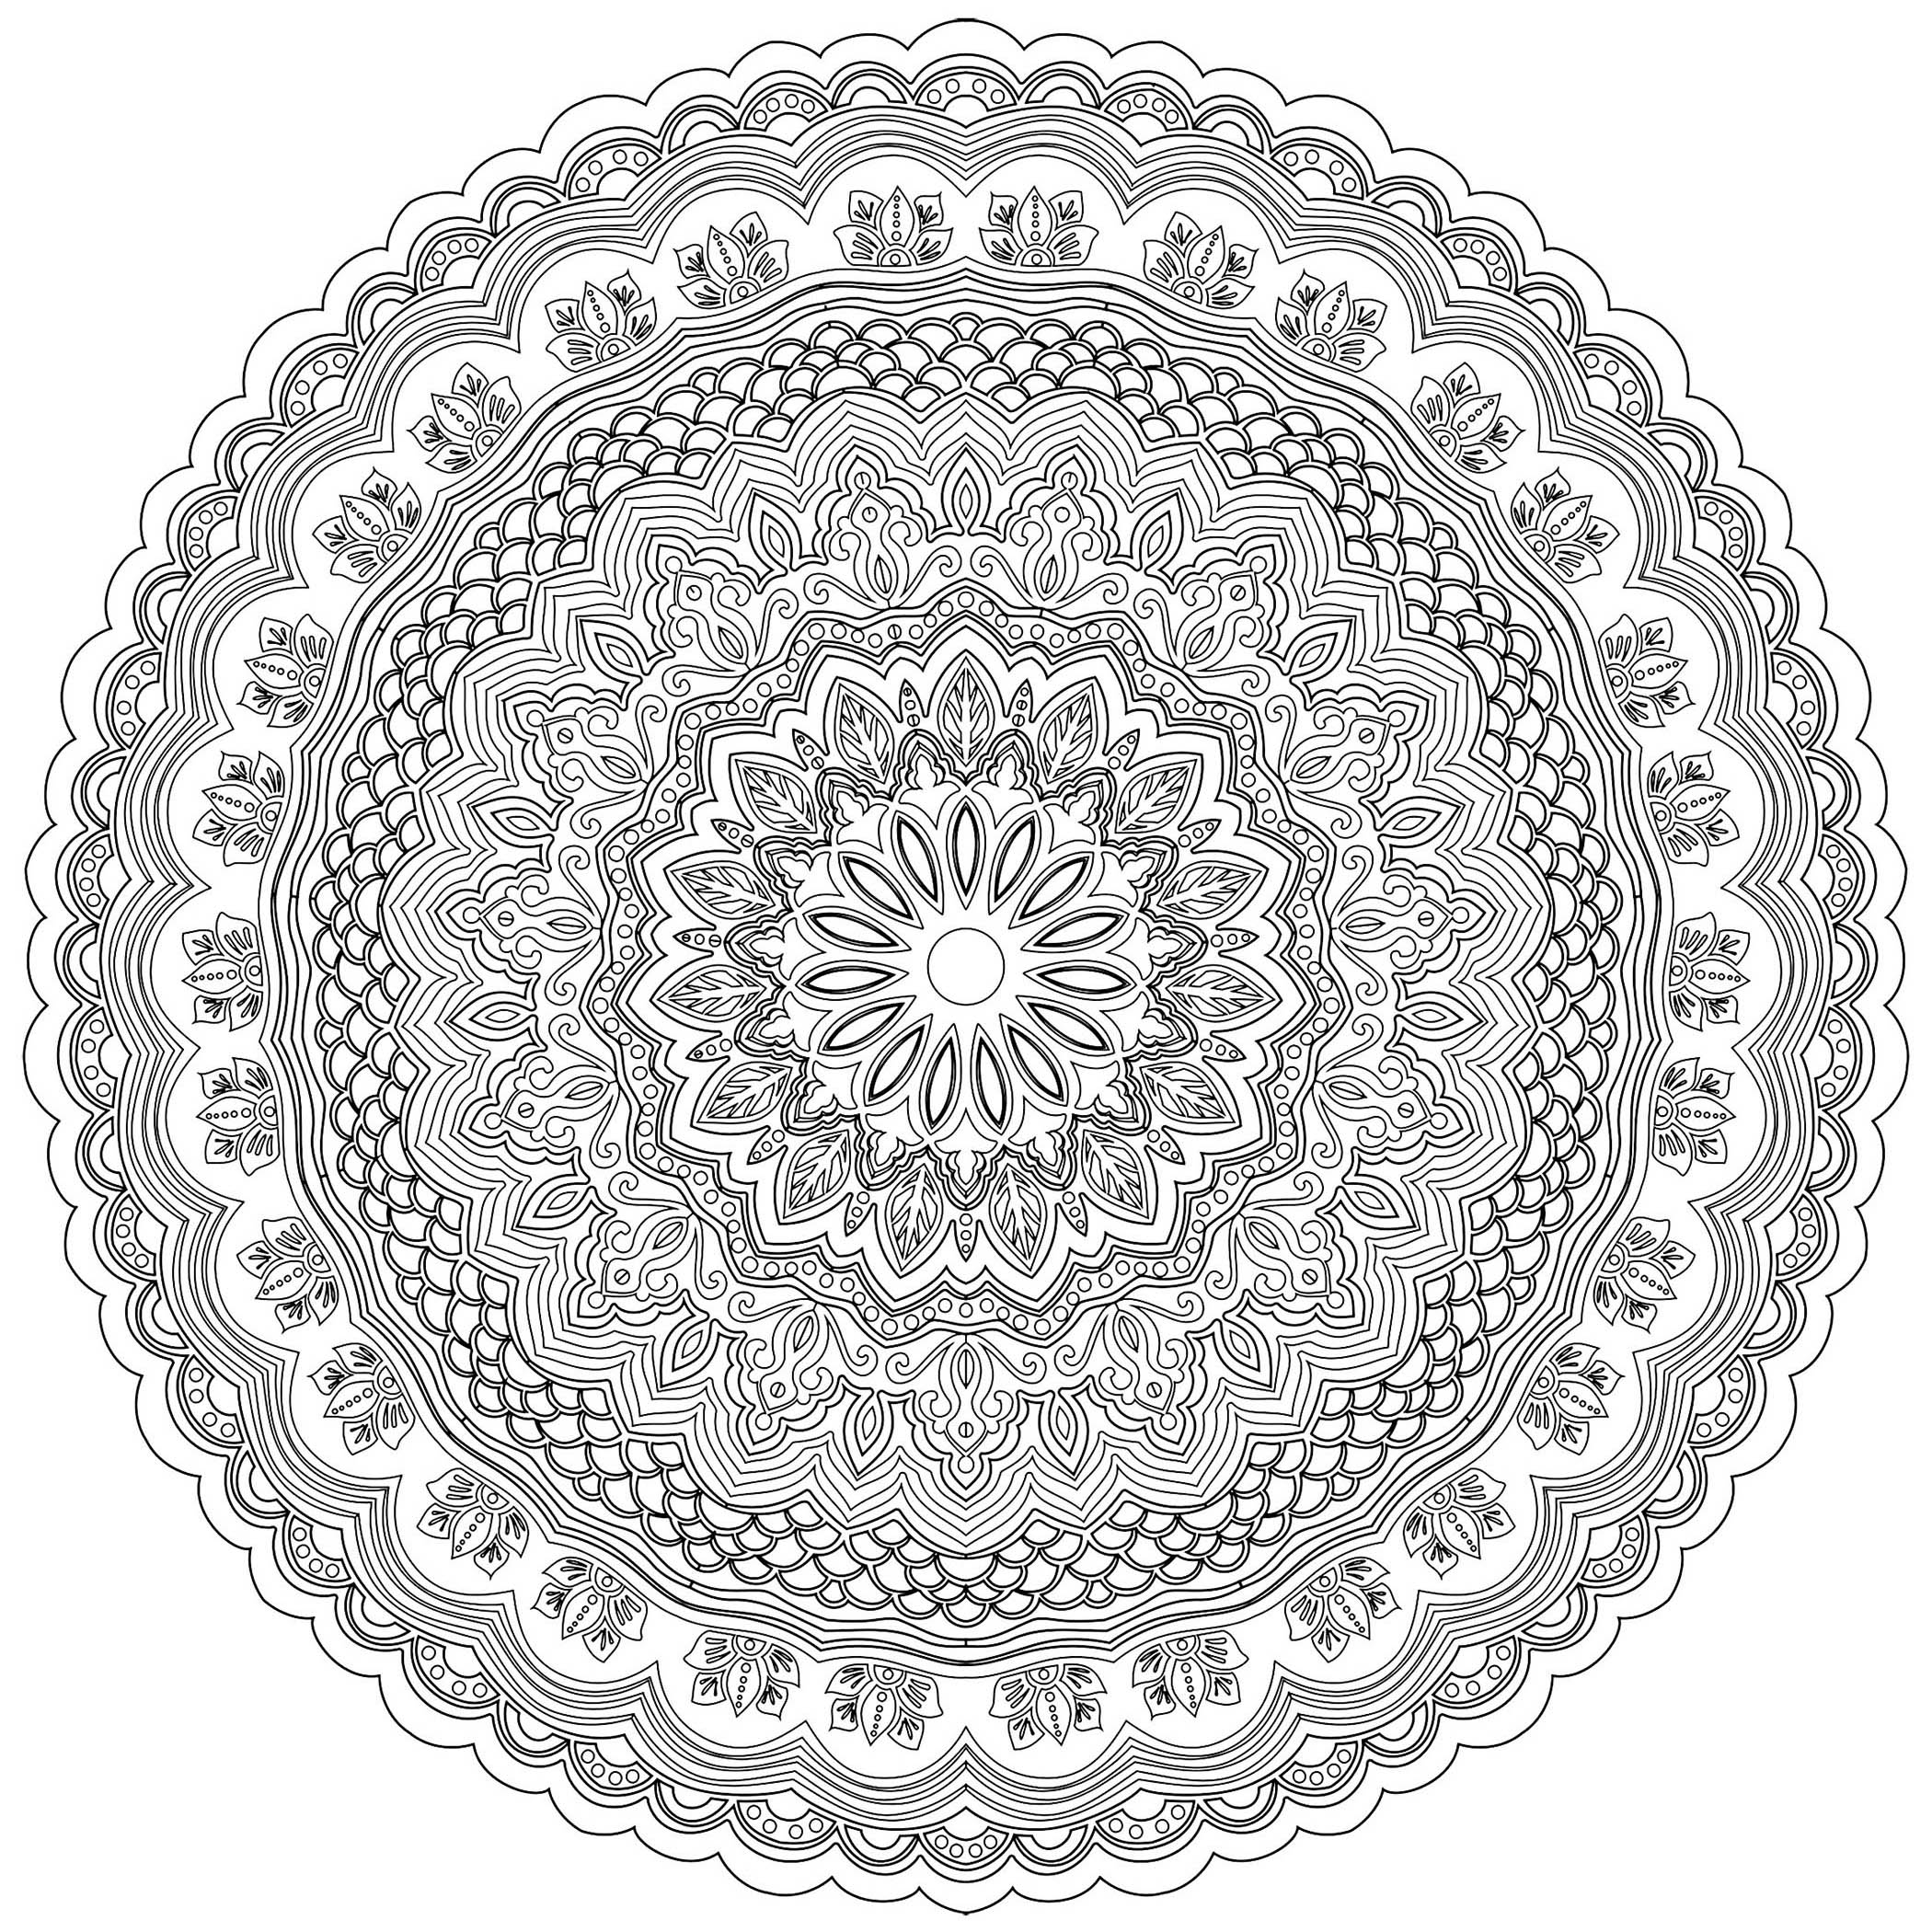 Zen & Anti-Stress Mandala - 10